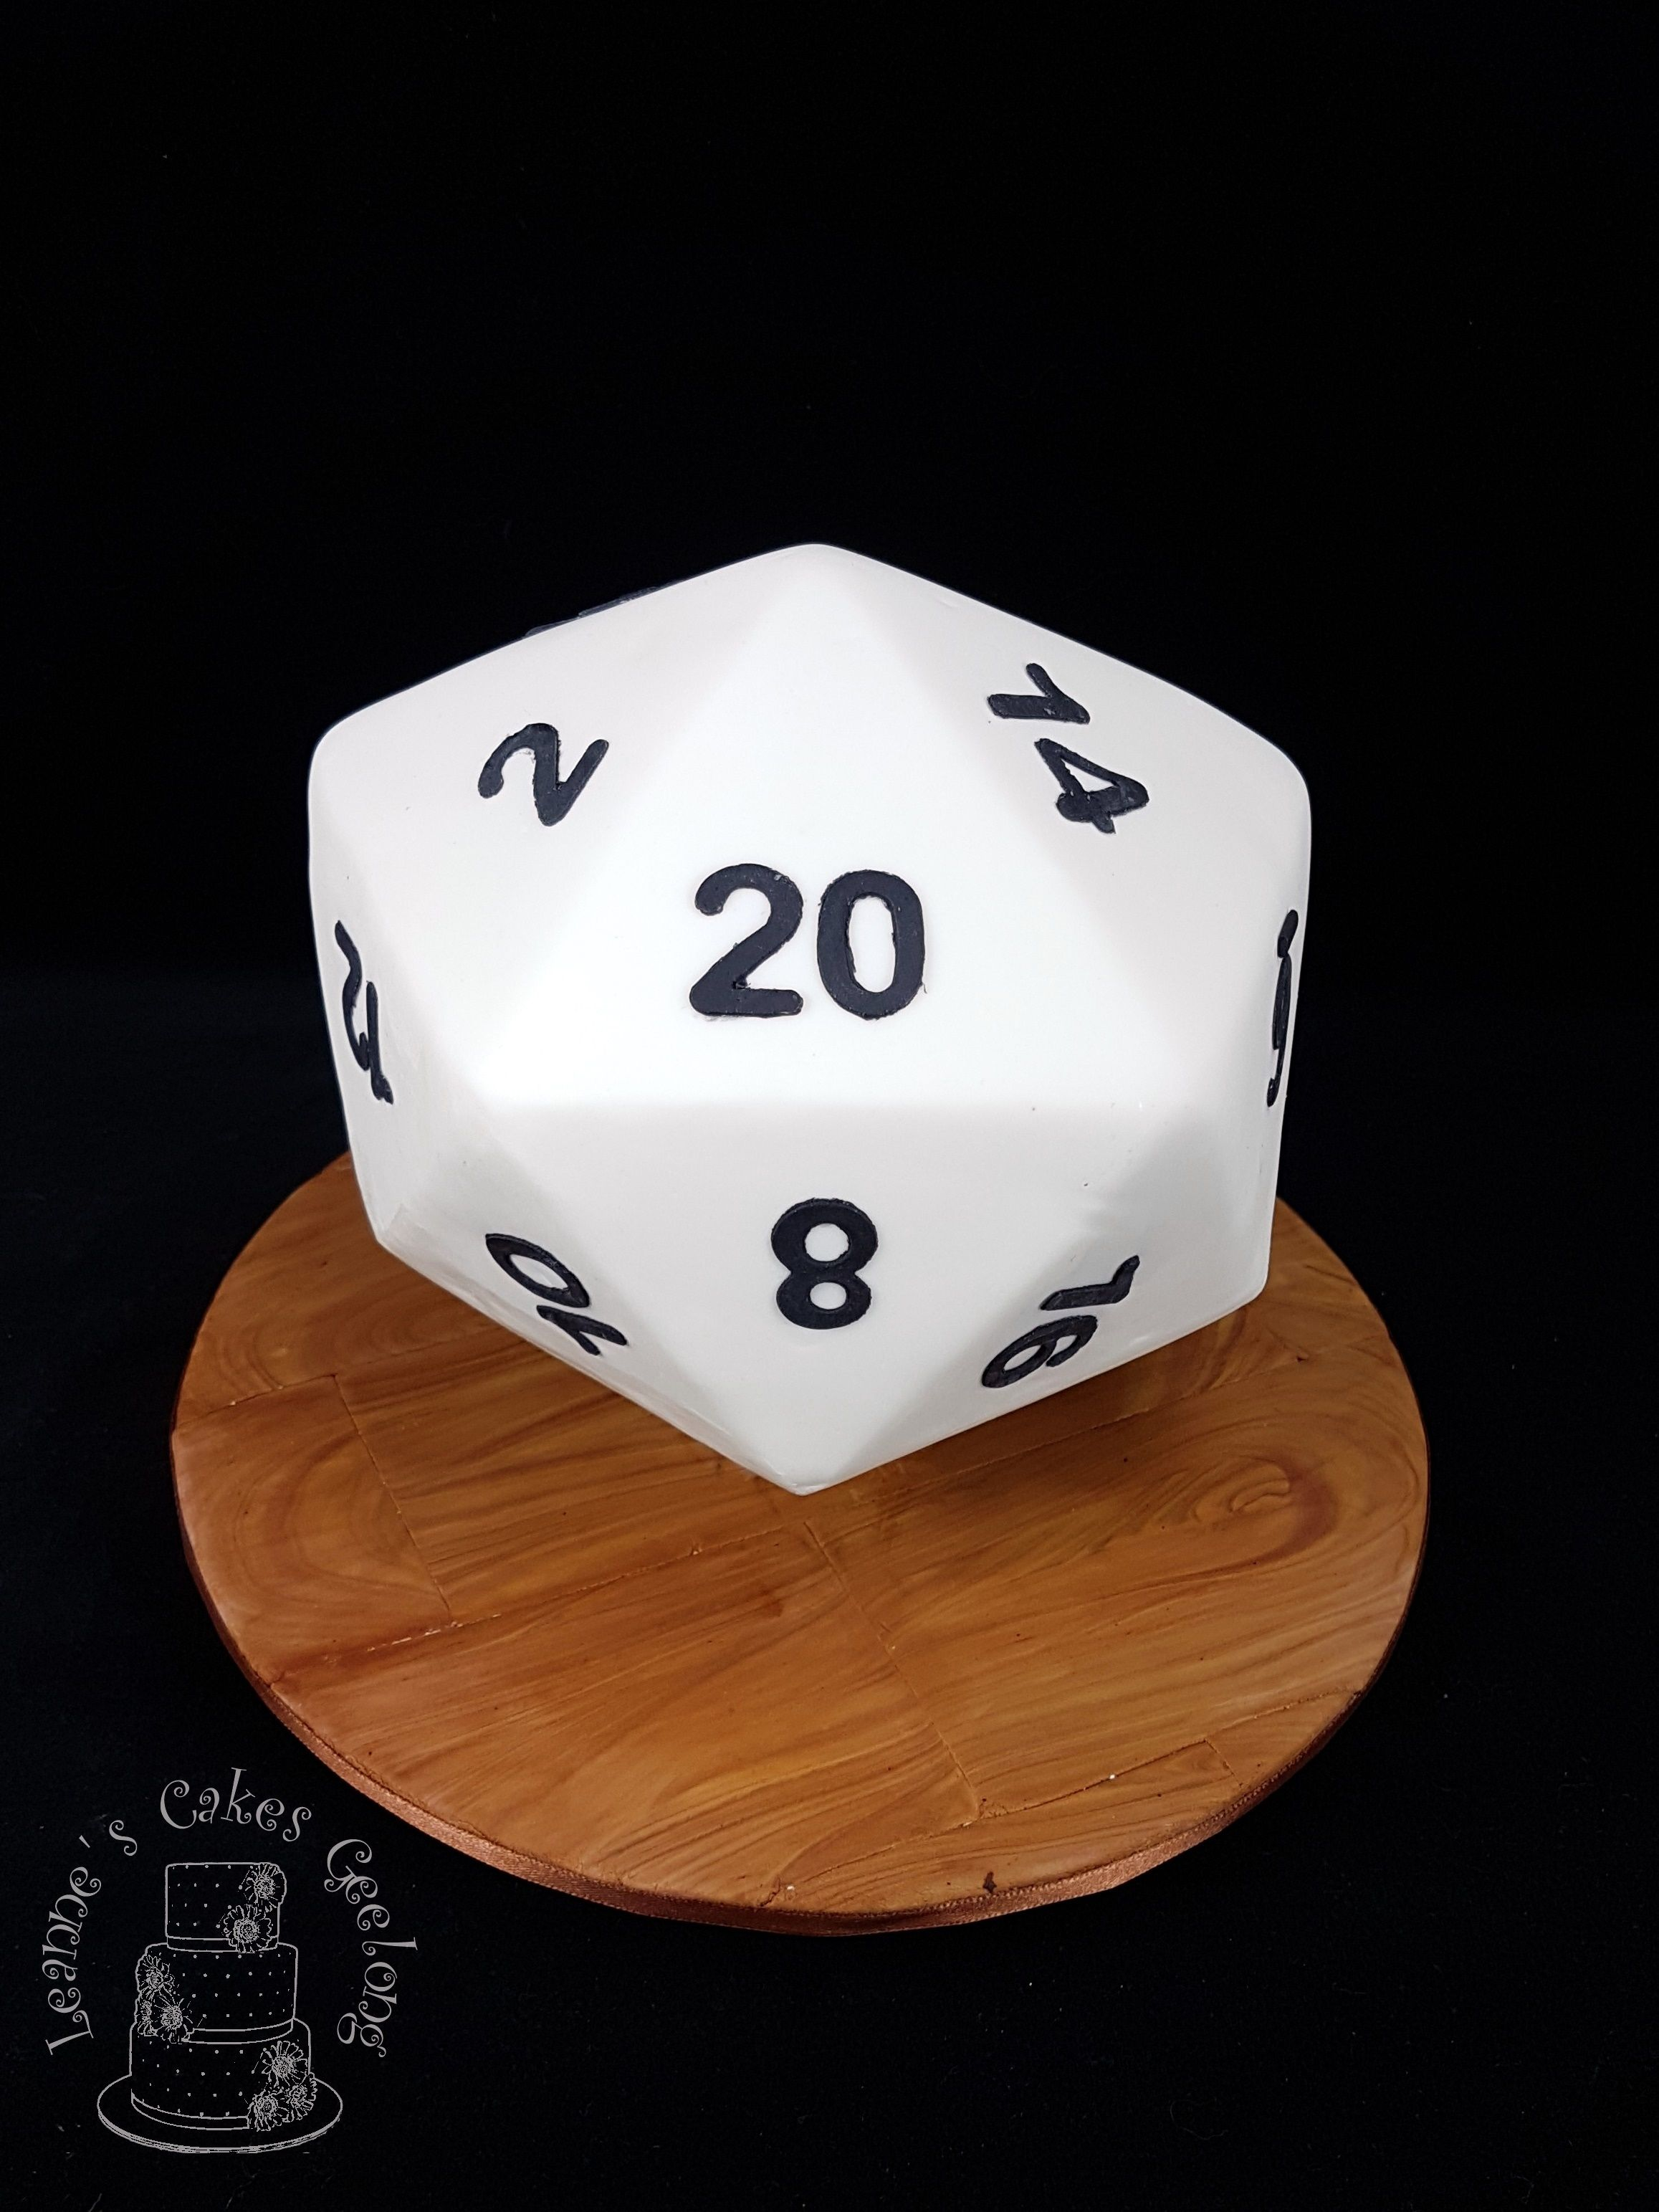 20 sided dice cake: This icosahedron was my most challenging